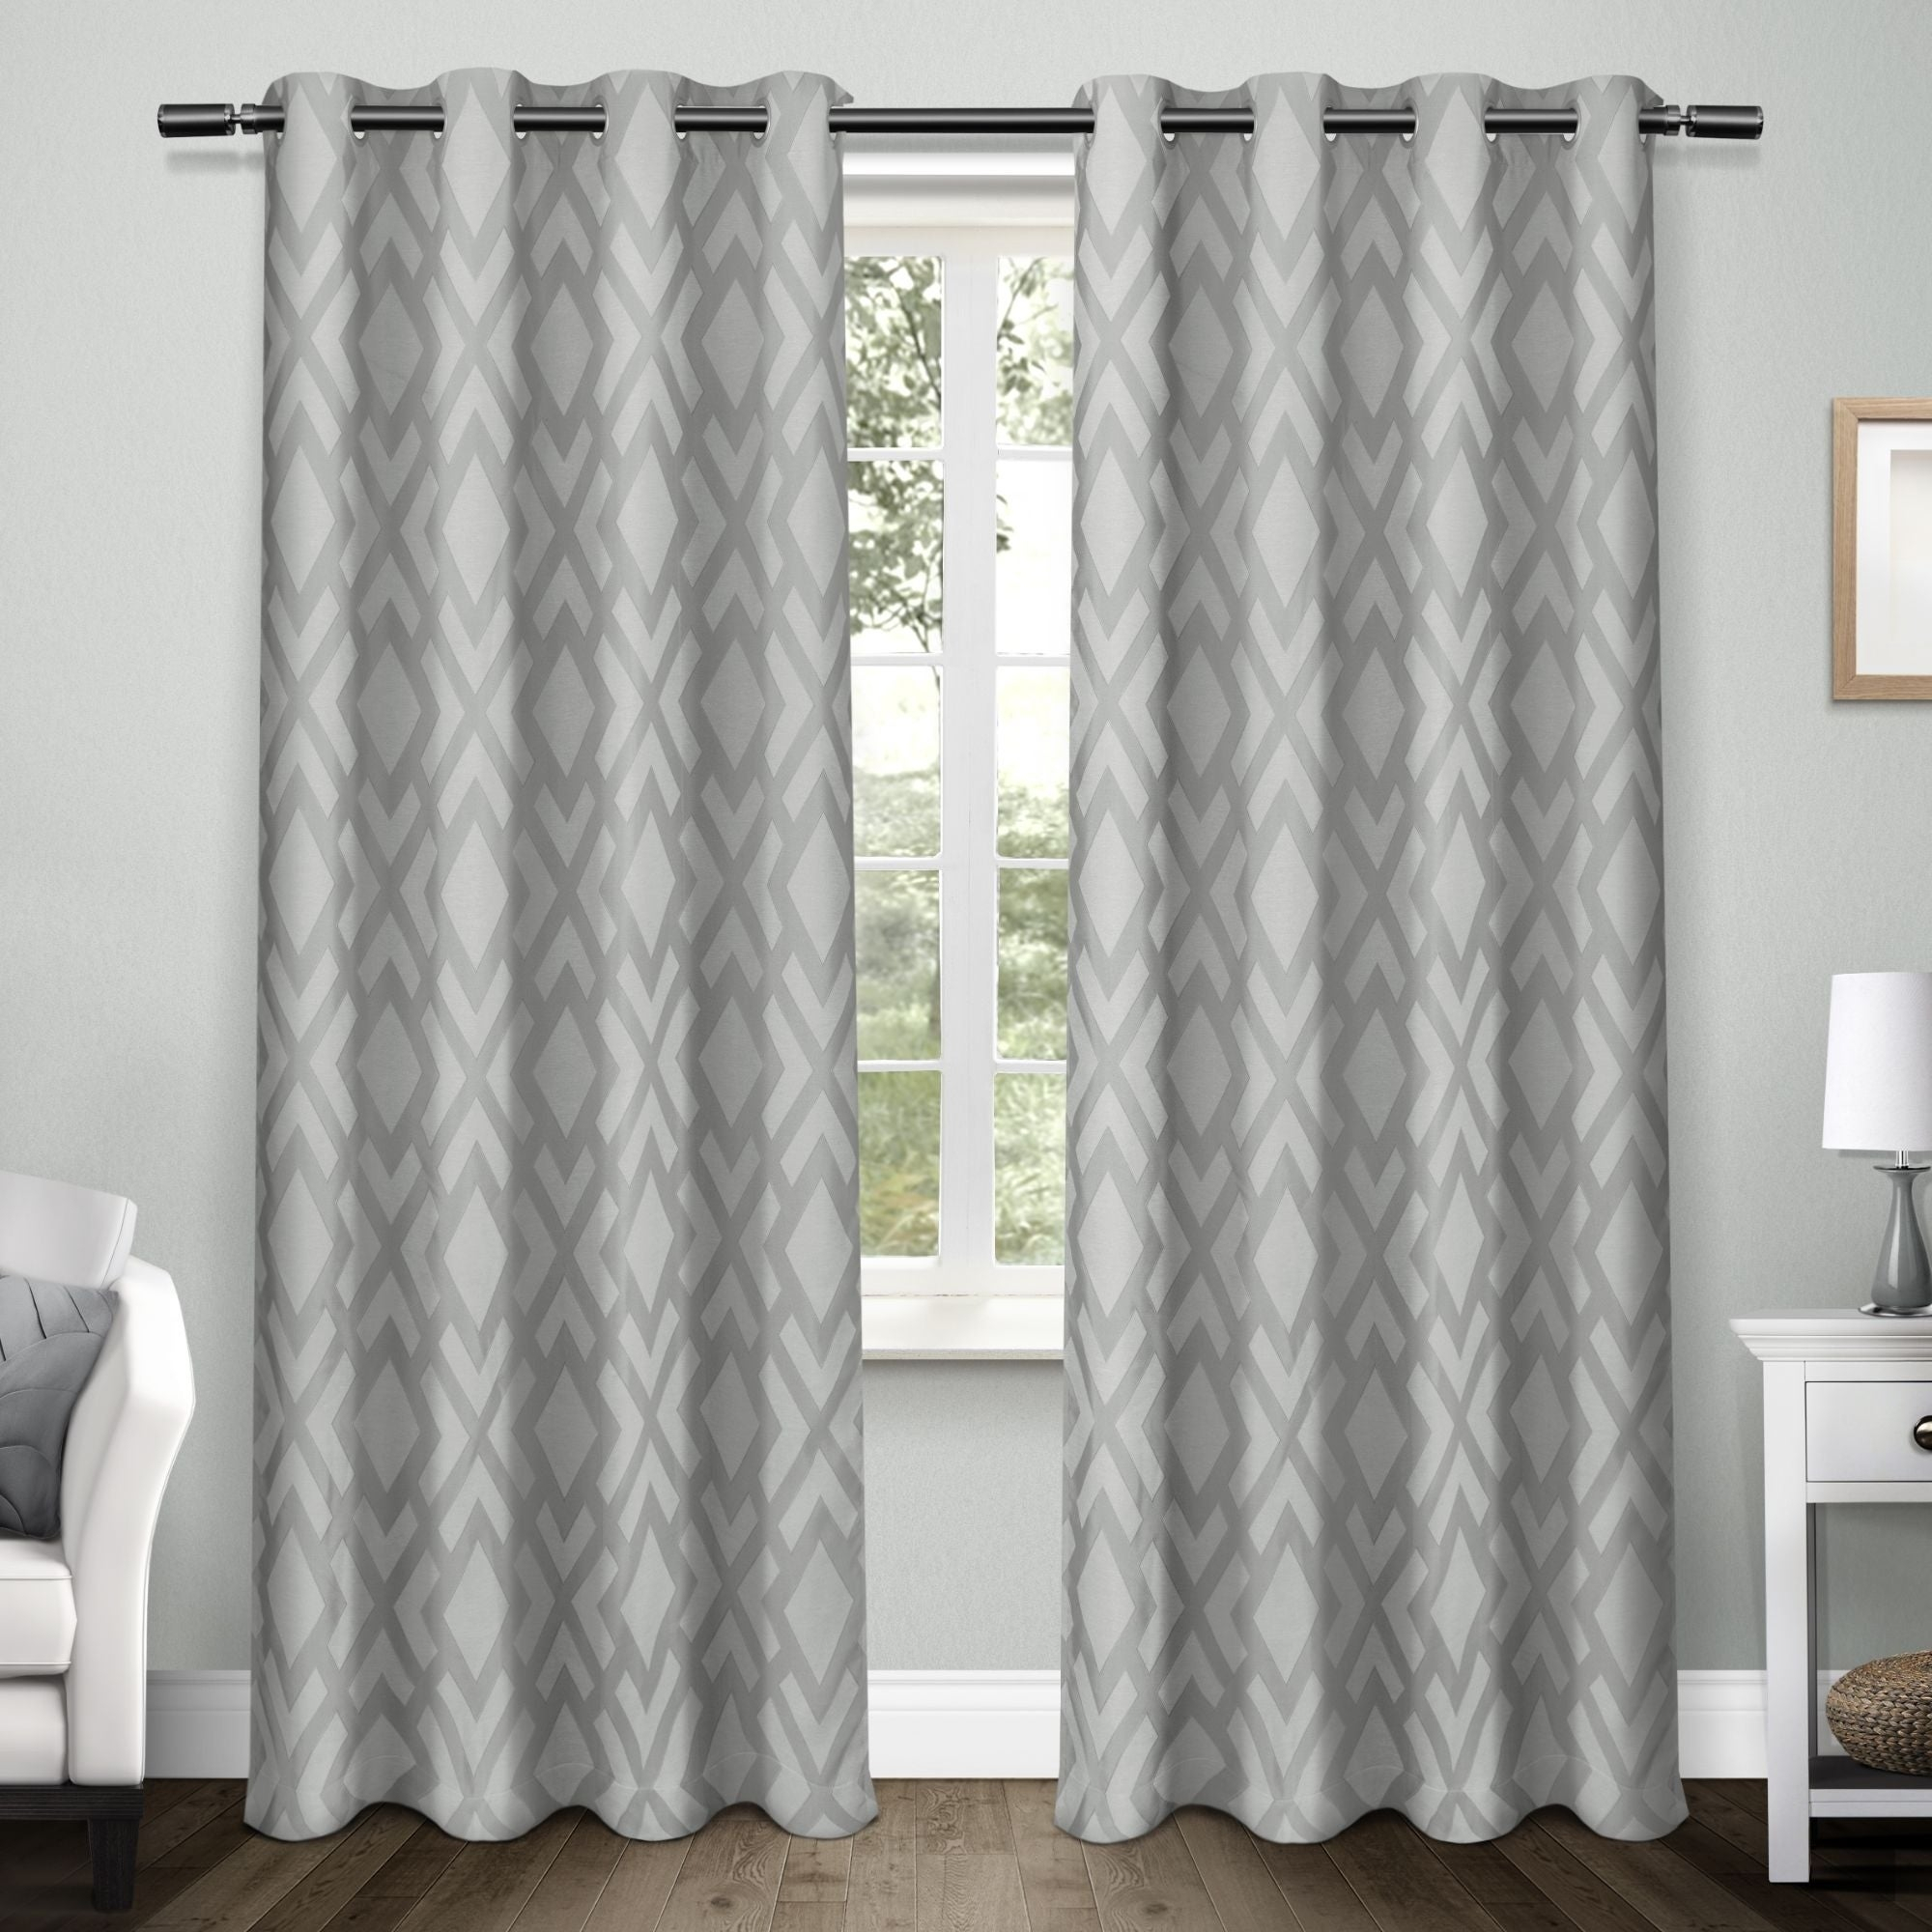 Ati Home Easton Thermal Woven Blackout Grommet Top Curtain Panel Pair In Woven Blackout Curtain Panel Pairs With Grommet Top (View 2 of 30)